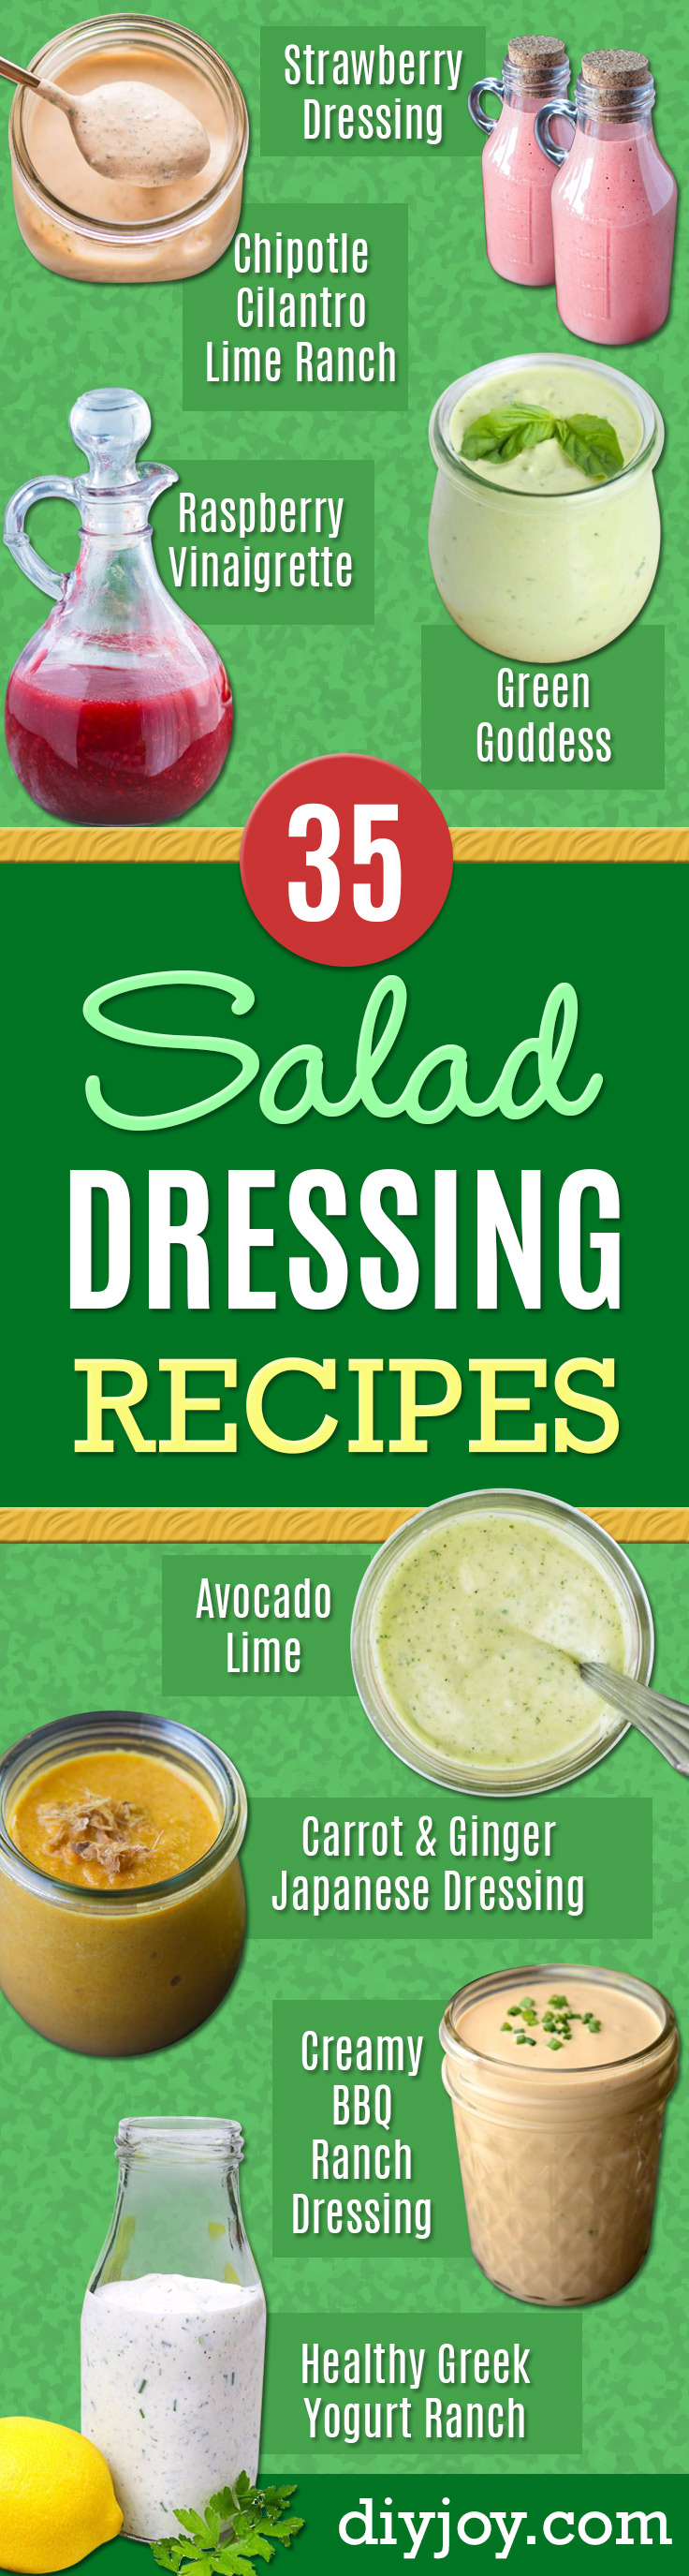 Best Homemade Salad Dressing Recipes - Healthy, Low Calorie and Easy Recipes for Creamy Homemade Dressings - How To Make Vinaigrette, Mango, Greek, Paleo, Balsamic, Ranch, and Italian Copycat Dressings #recipes